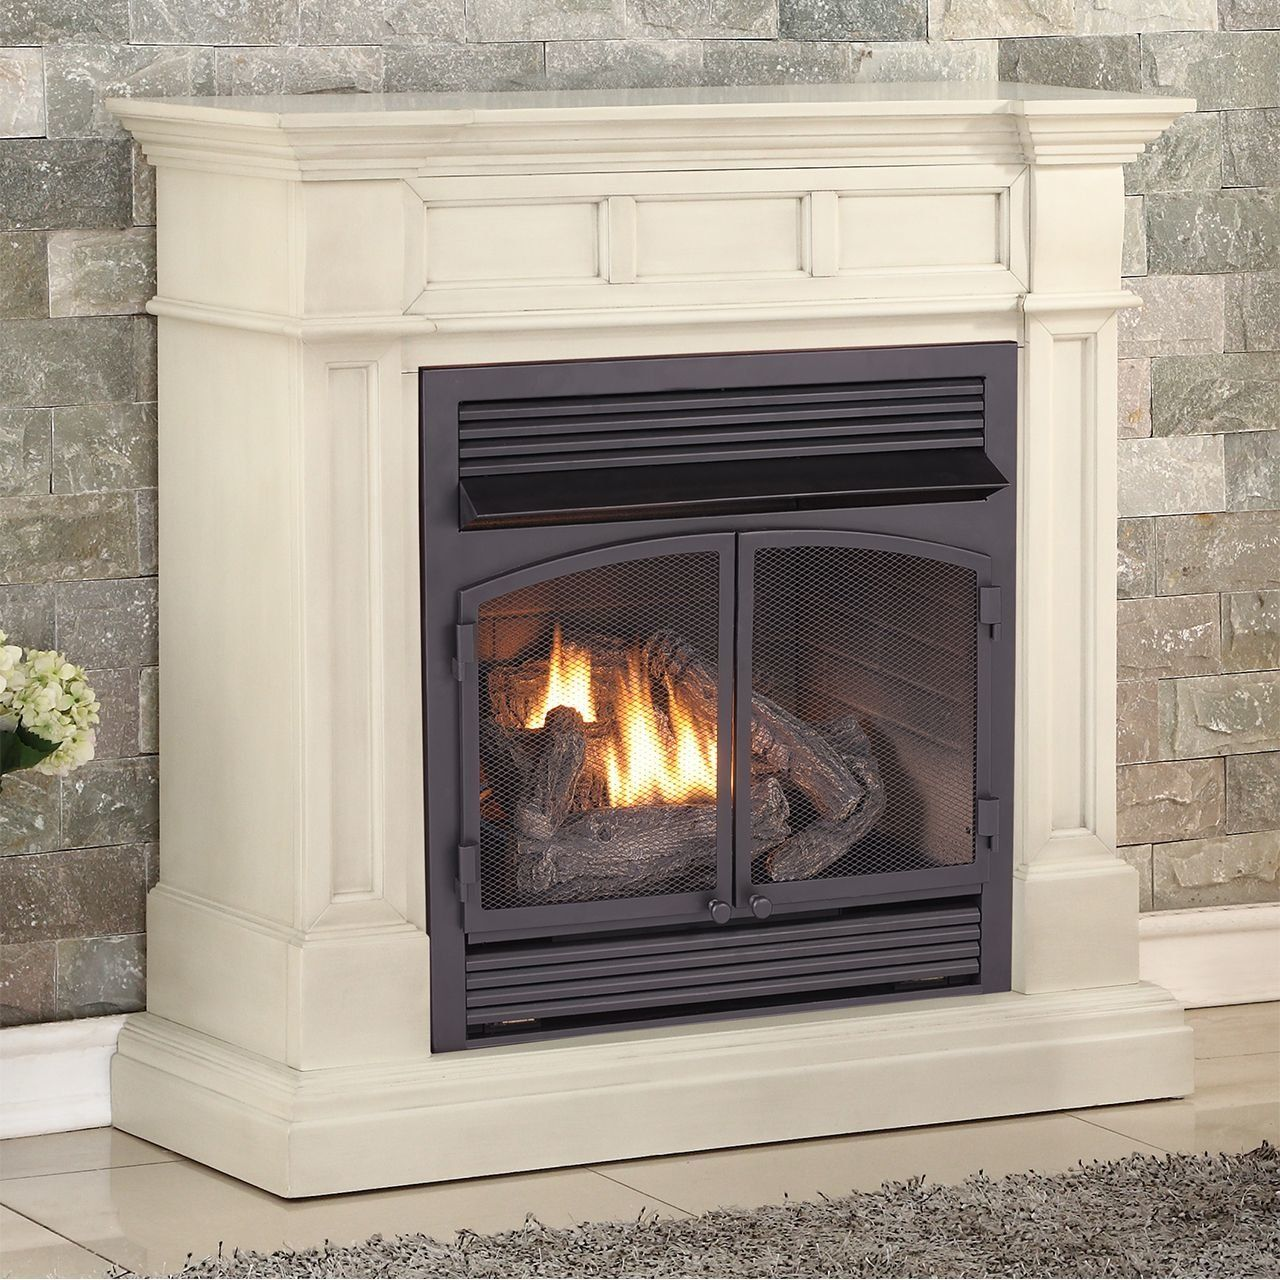 Vent Free Freestanding Natural Gas Propane Fireplace Propane